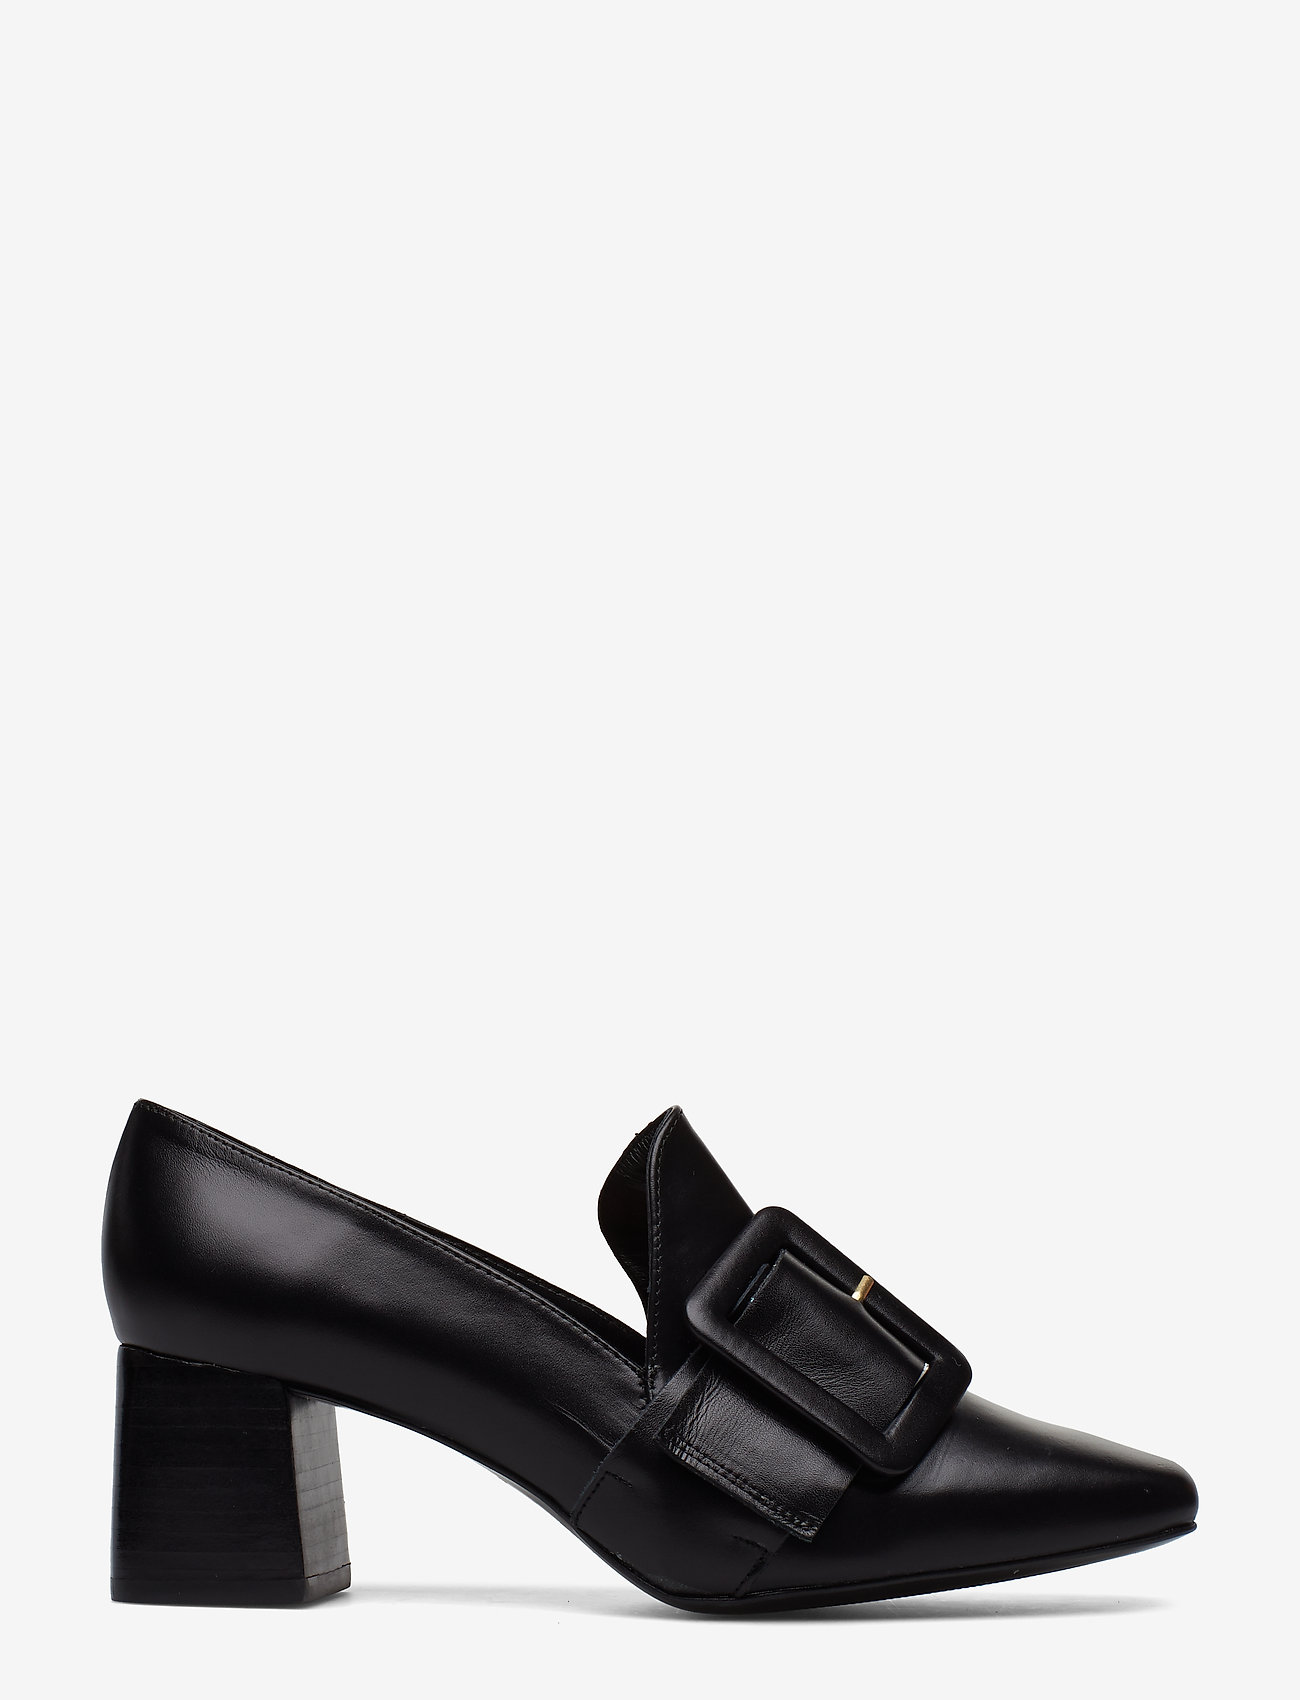 Flattered - Lily Leather Pump - classic pumps - black nappa